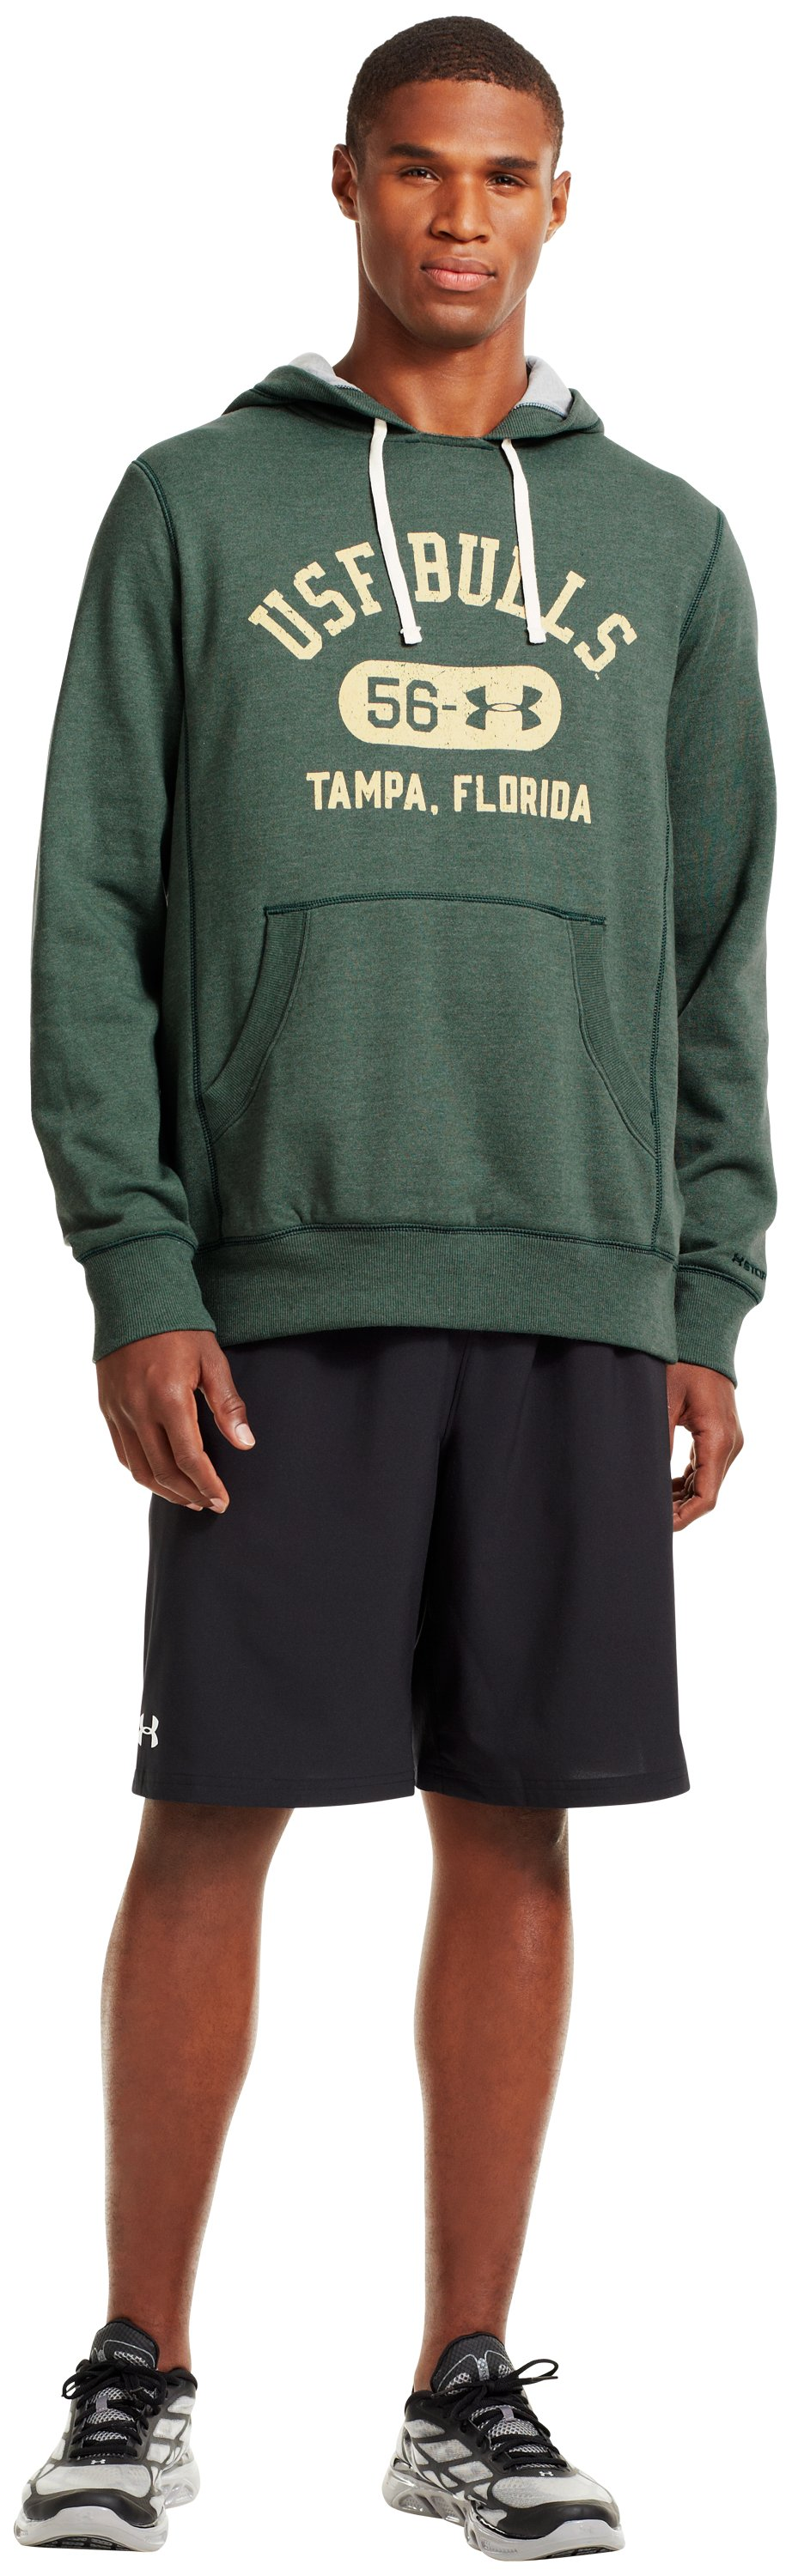 Men's South Florida Under Armour® Legacy Hoodie, Forest Green